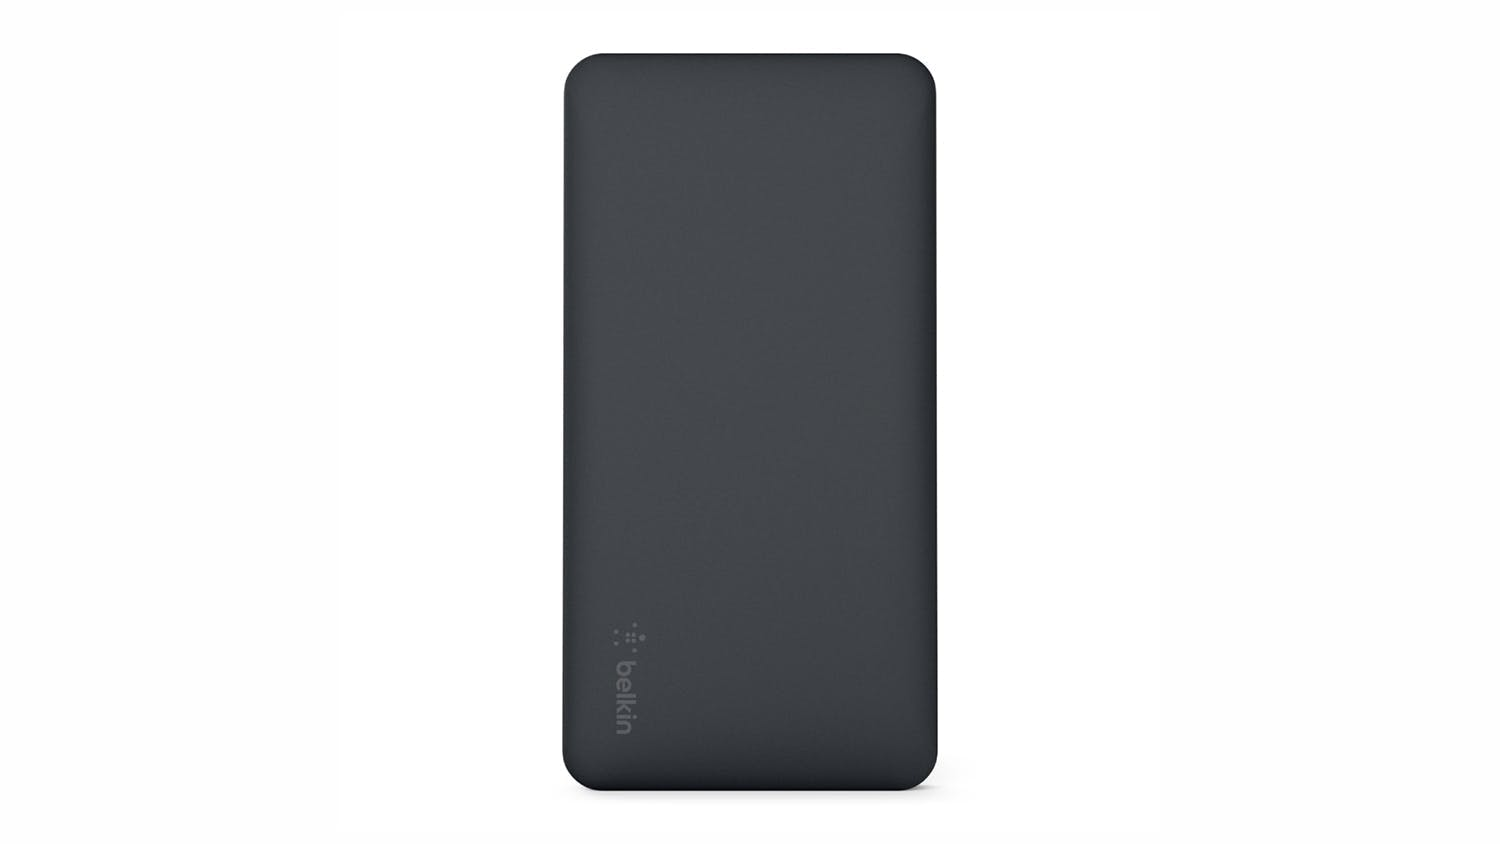 Belkin Pocket Power 10,000 mAh Power Bank - Black